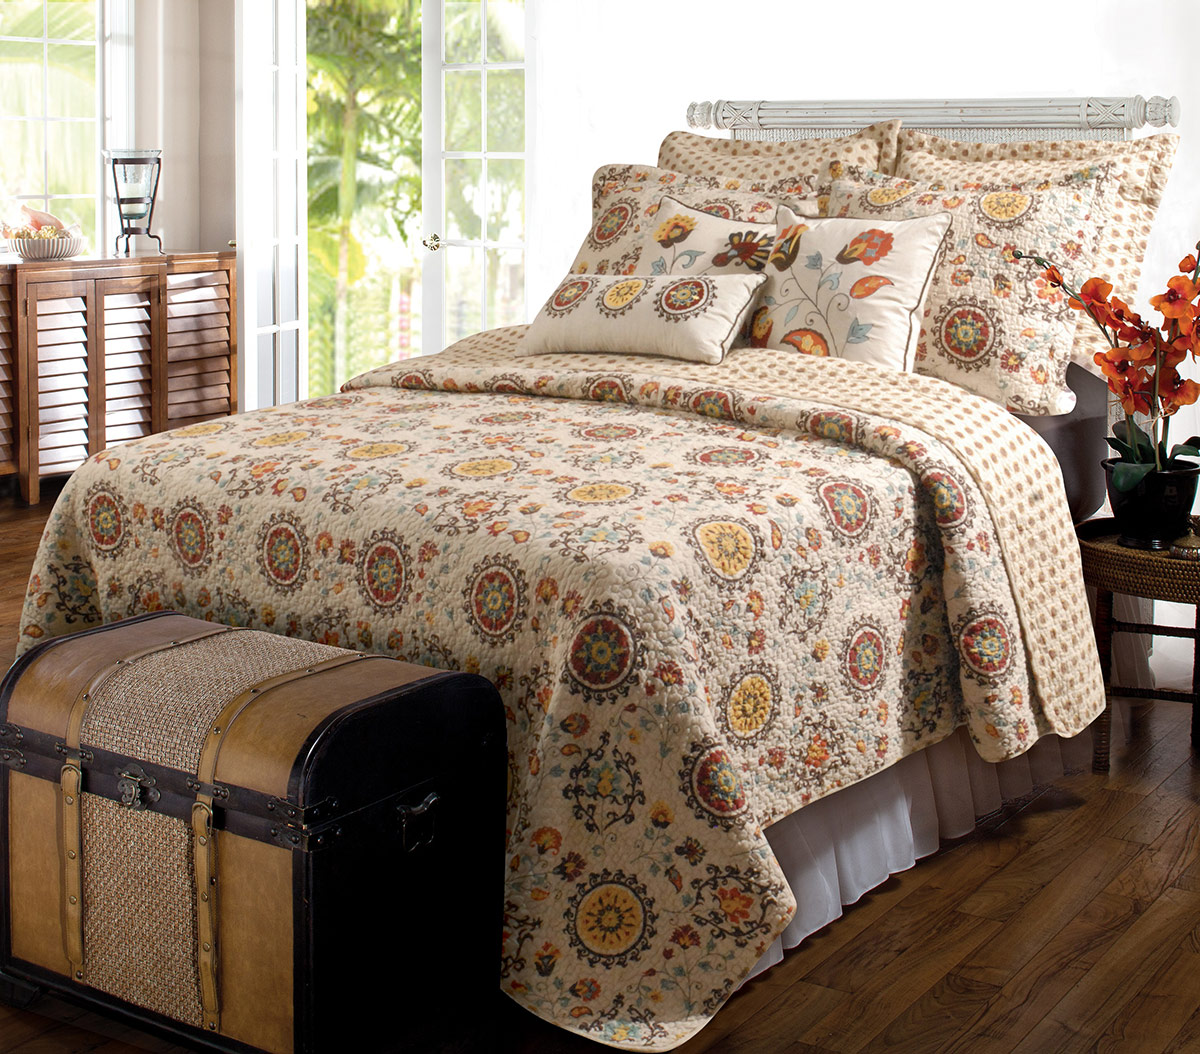 Western Medallions 3pc Quilt Set - King